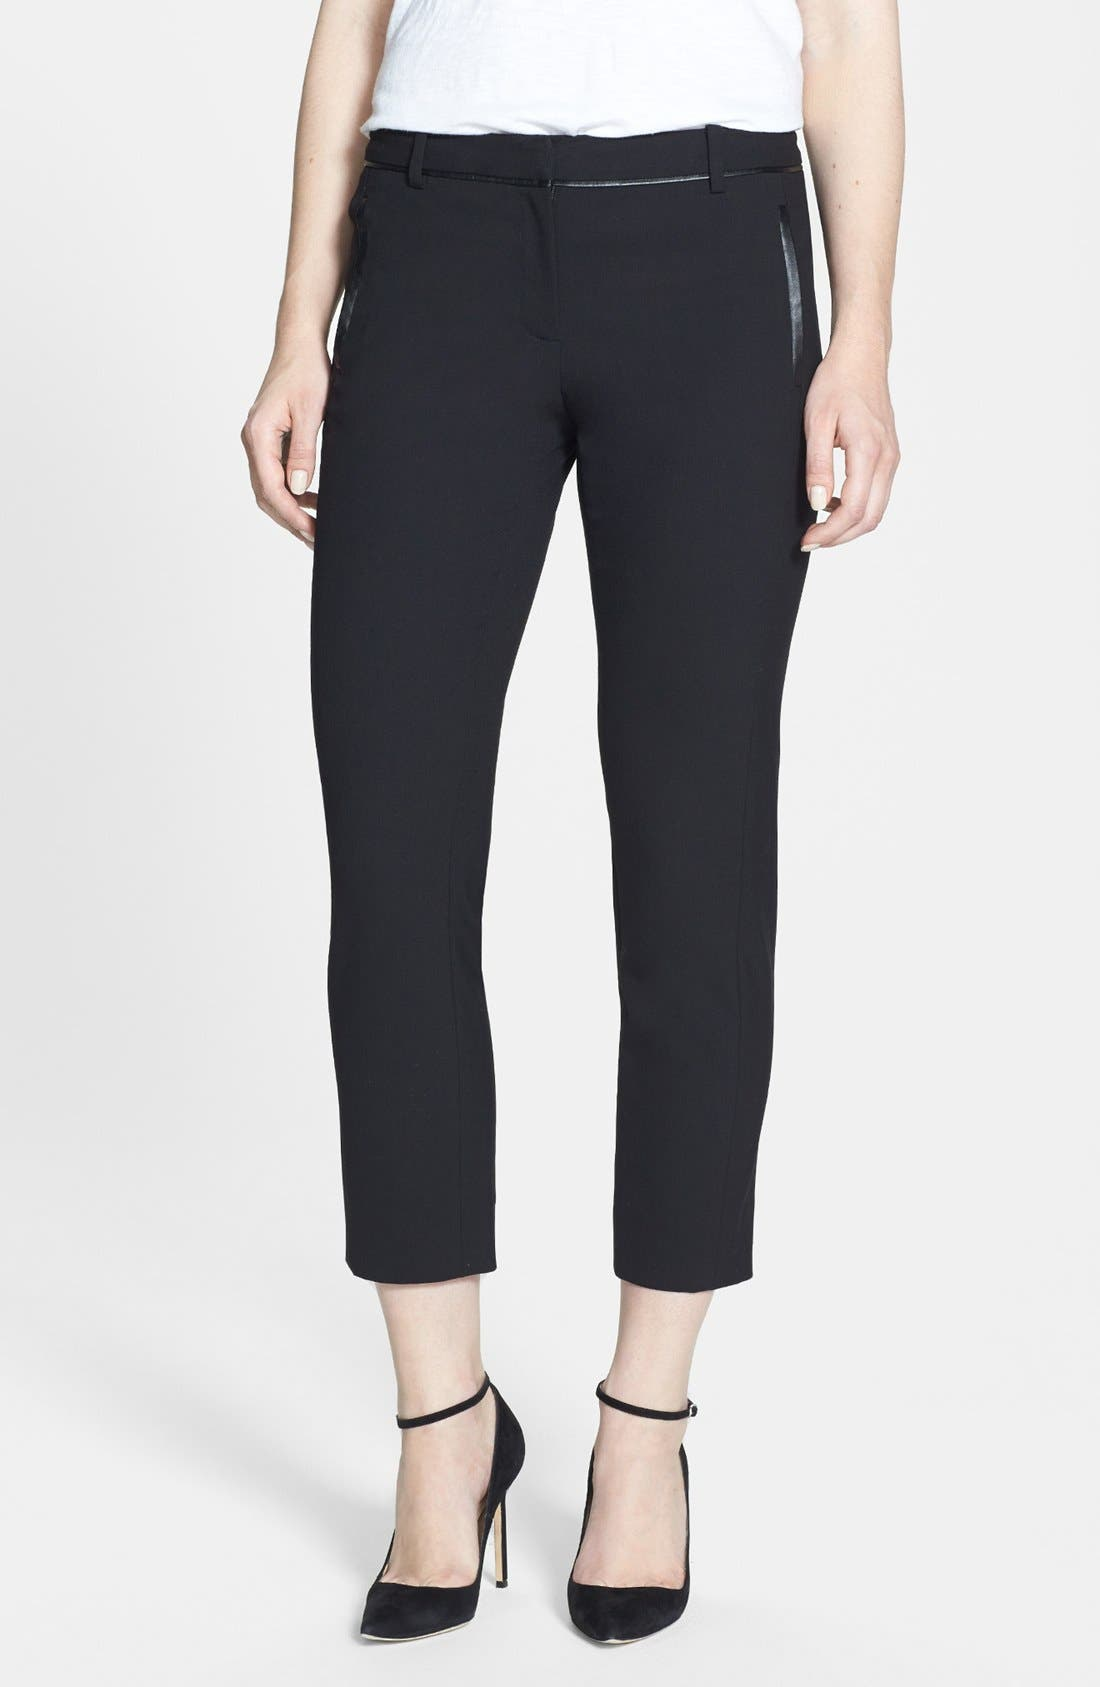 Alternate Image 1 Selected - Vince Camuto 'Scarpa' Faux Leather Trim Skinny Crop Pants